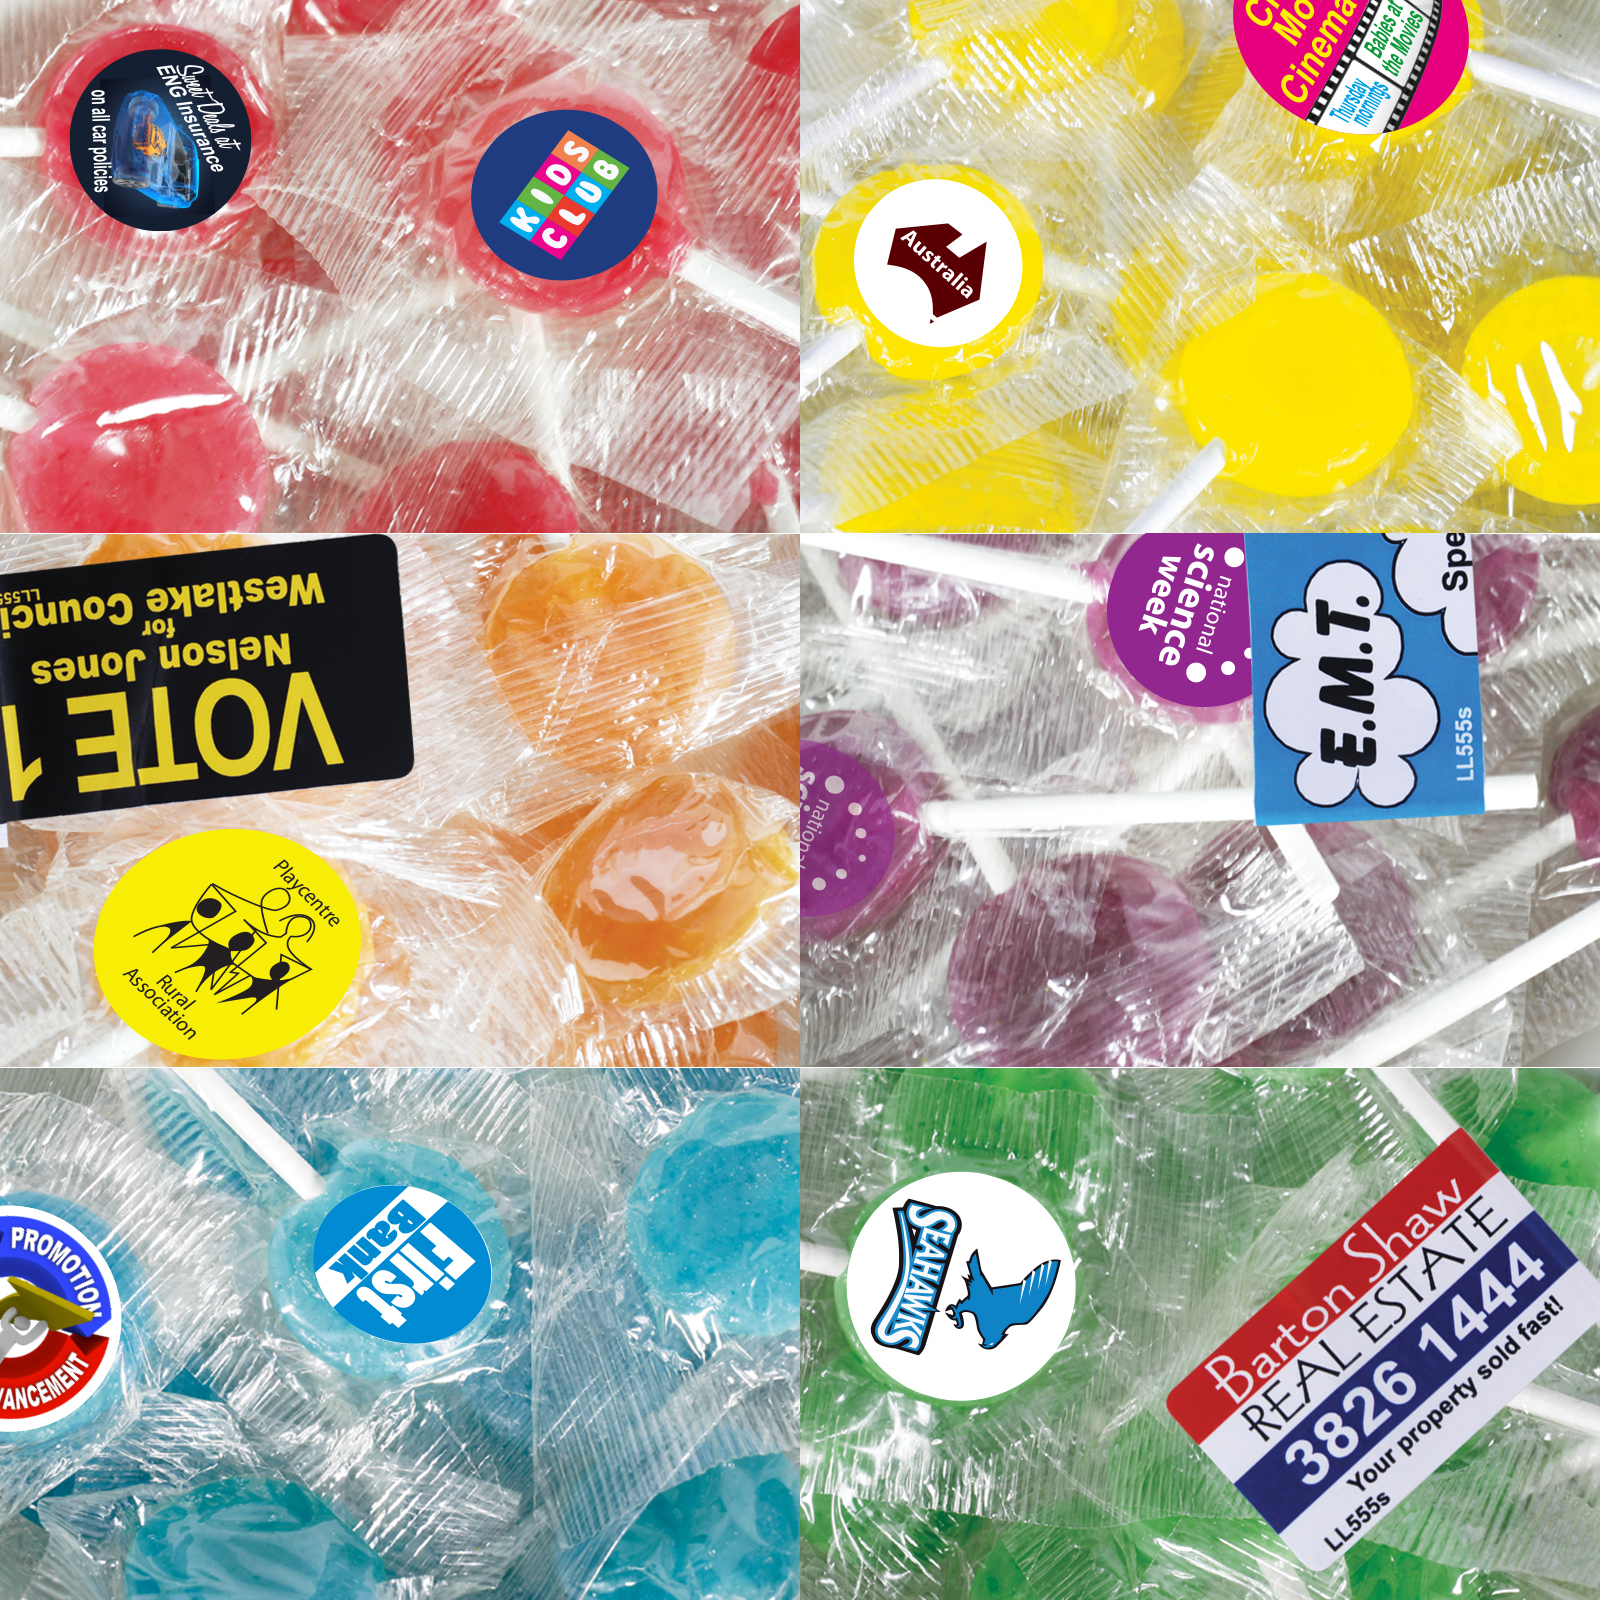 Corporate Colour Lollipops - Includes a full colour logo